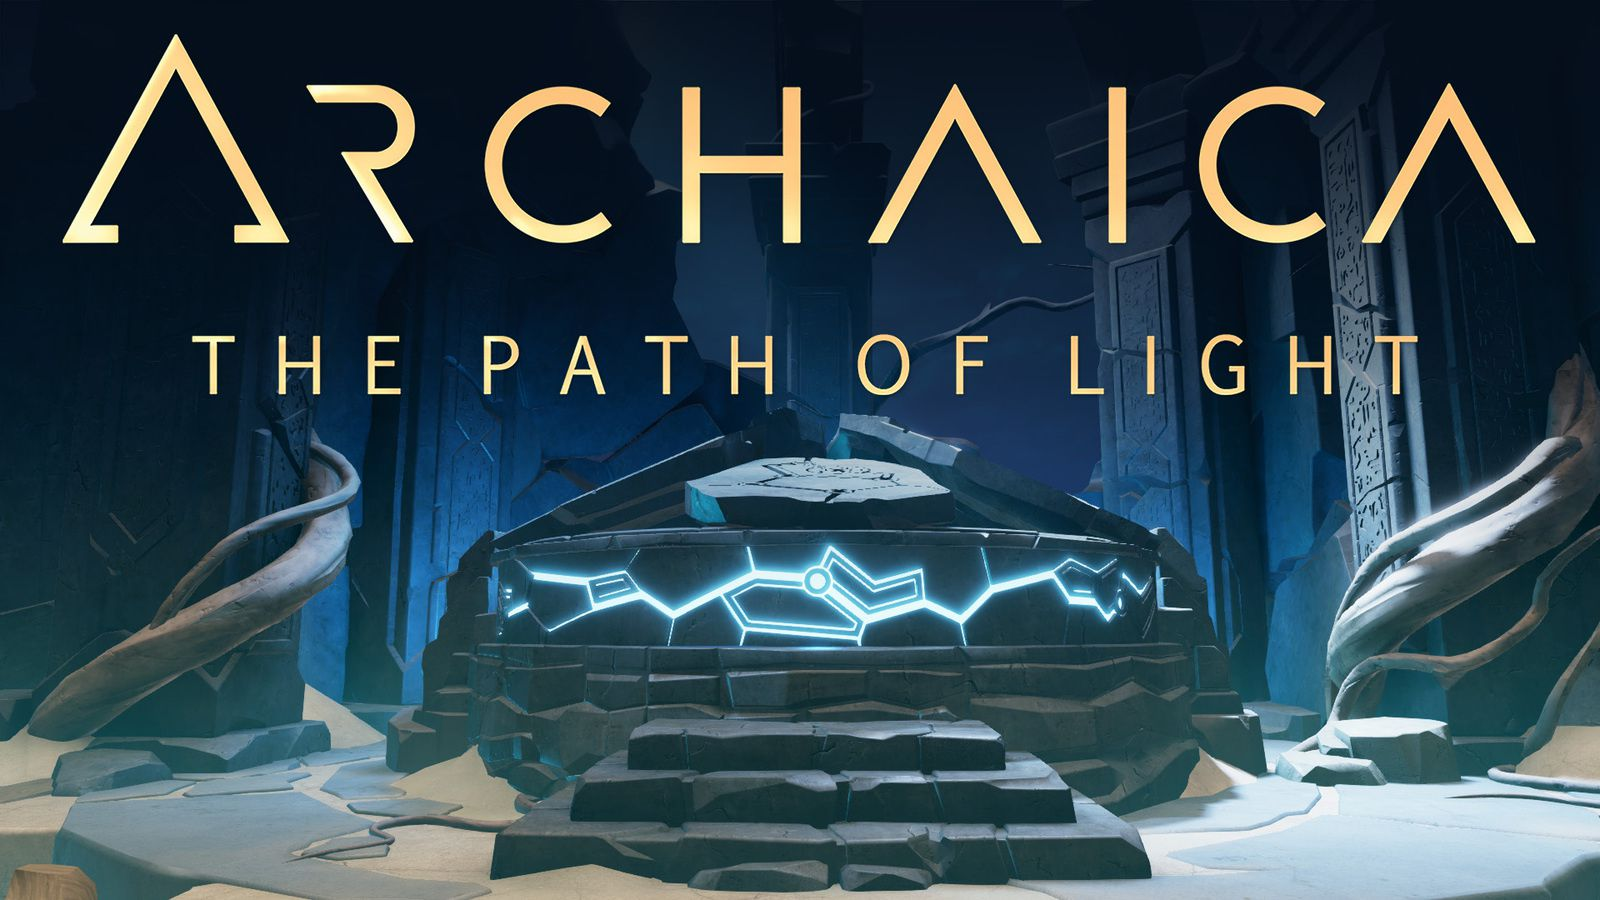 [TEST] ARCHAICA THE PATH OF LIGHT PC